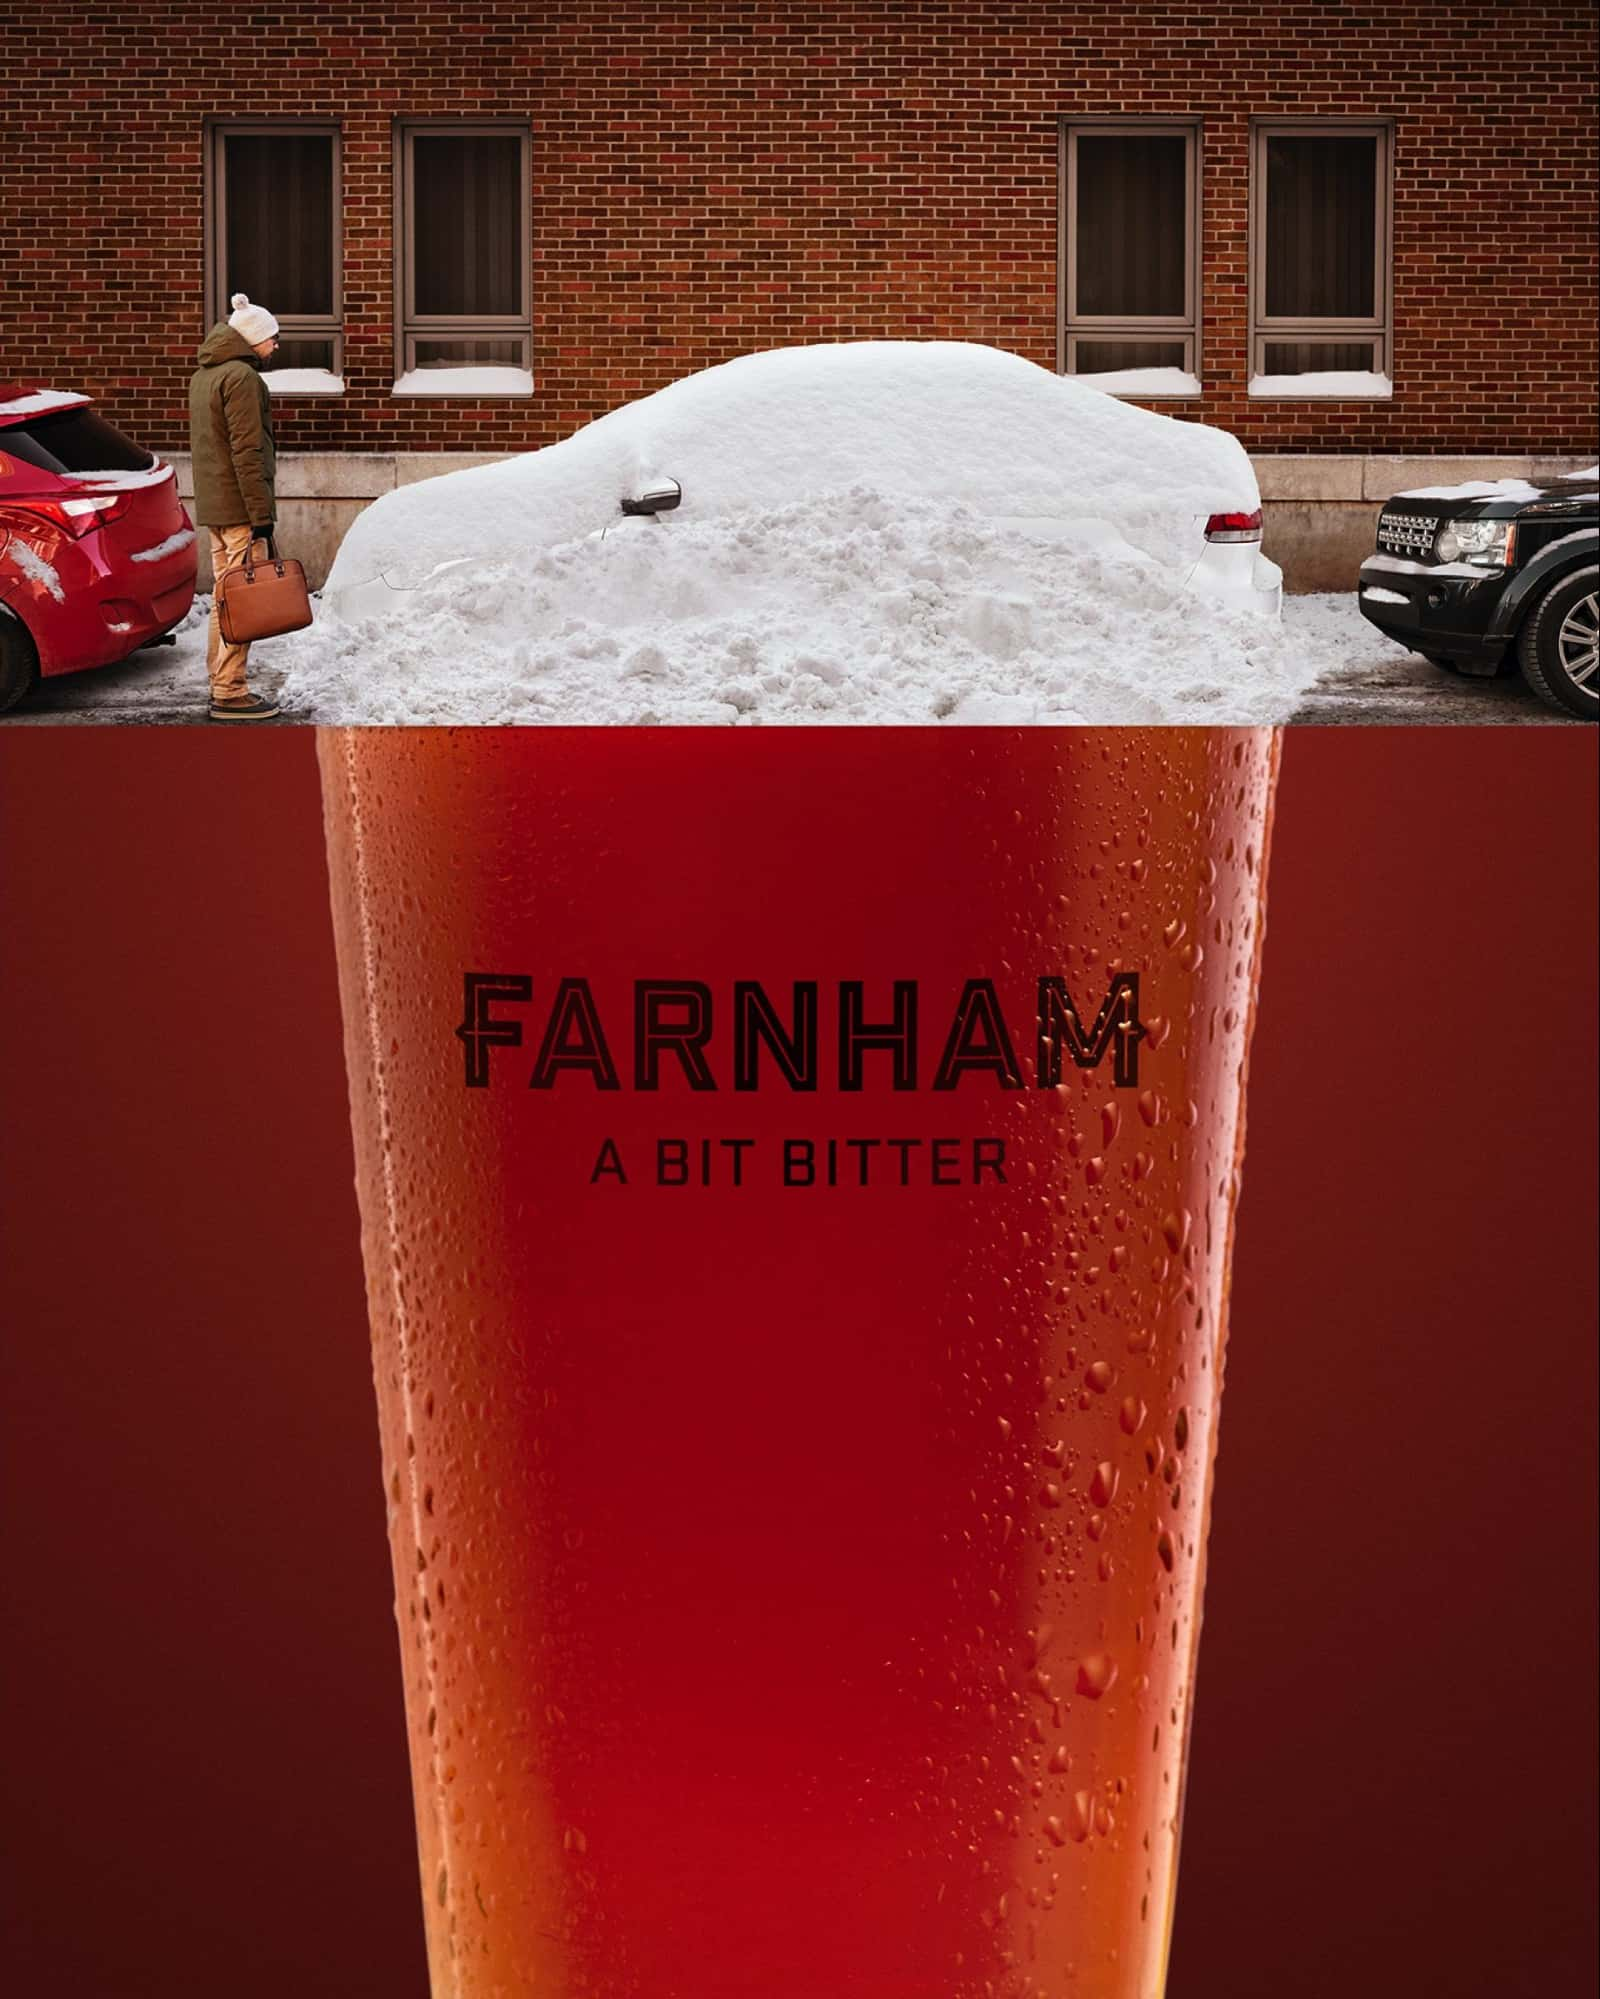 farnham print advertisement example